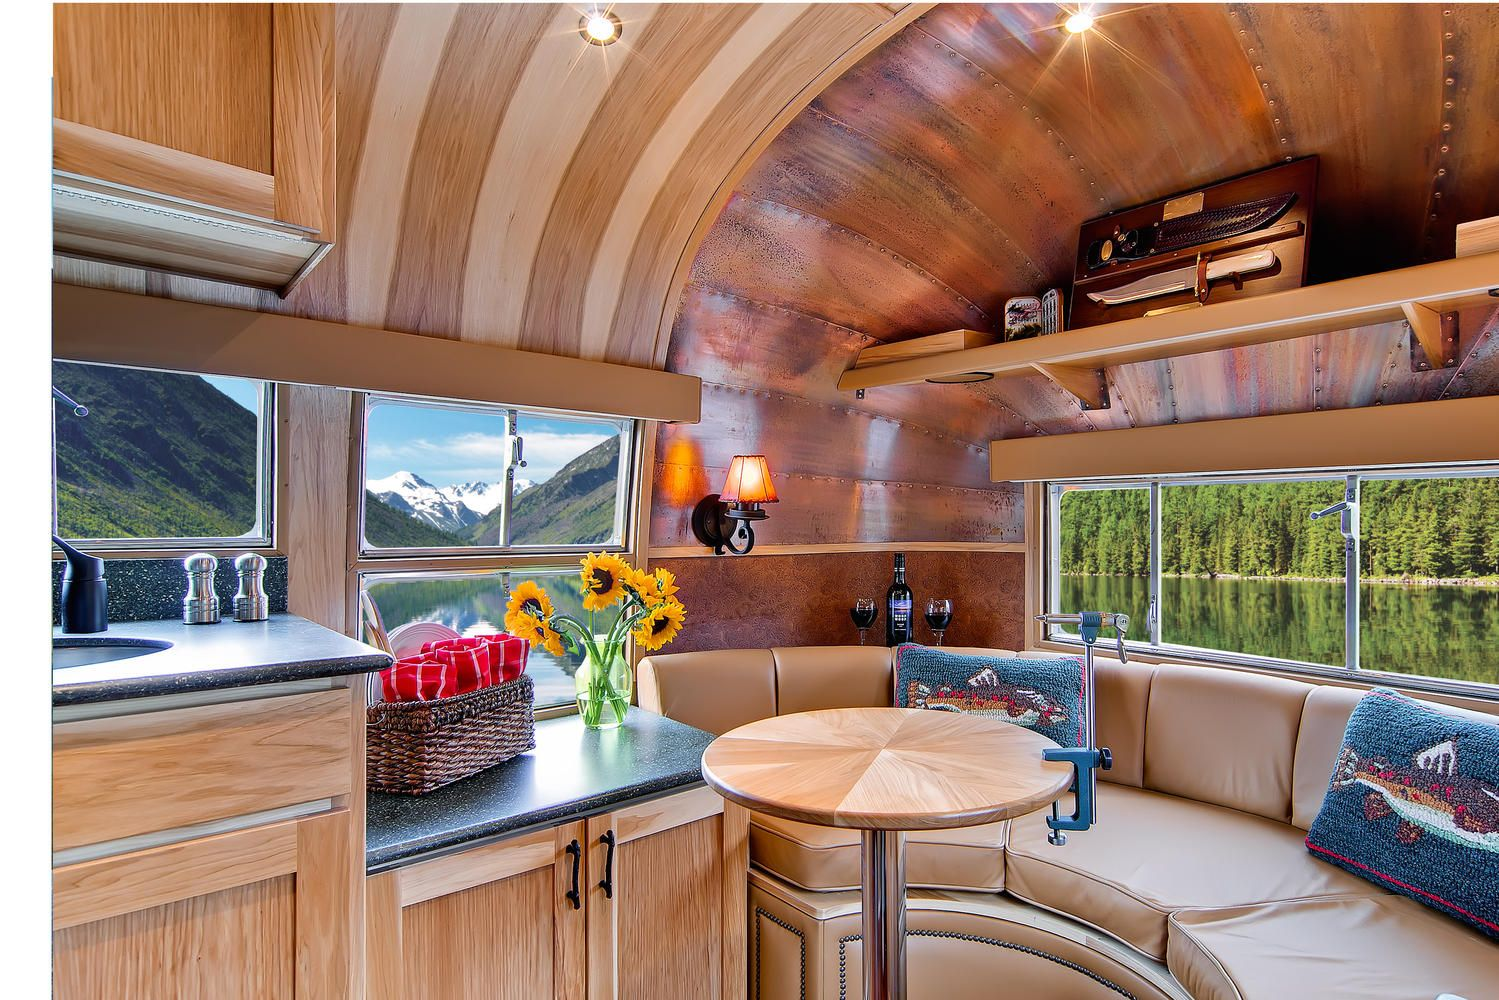 This One Of A Kind 1954 Airstream Flying Cloud Was Originally Used As A Hunting And Fishing Lodge Near Vintage Airstream Airstream Interior Airstream Trailers